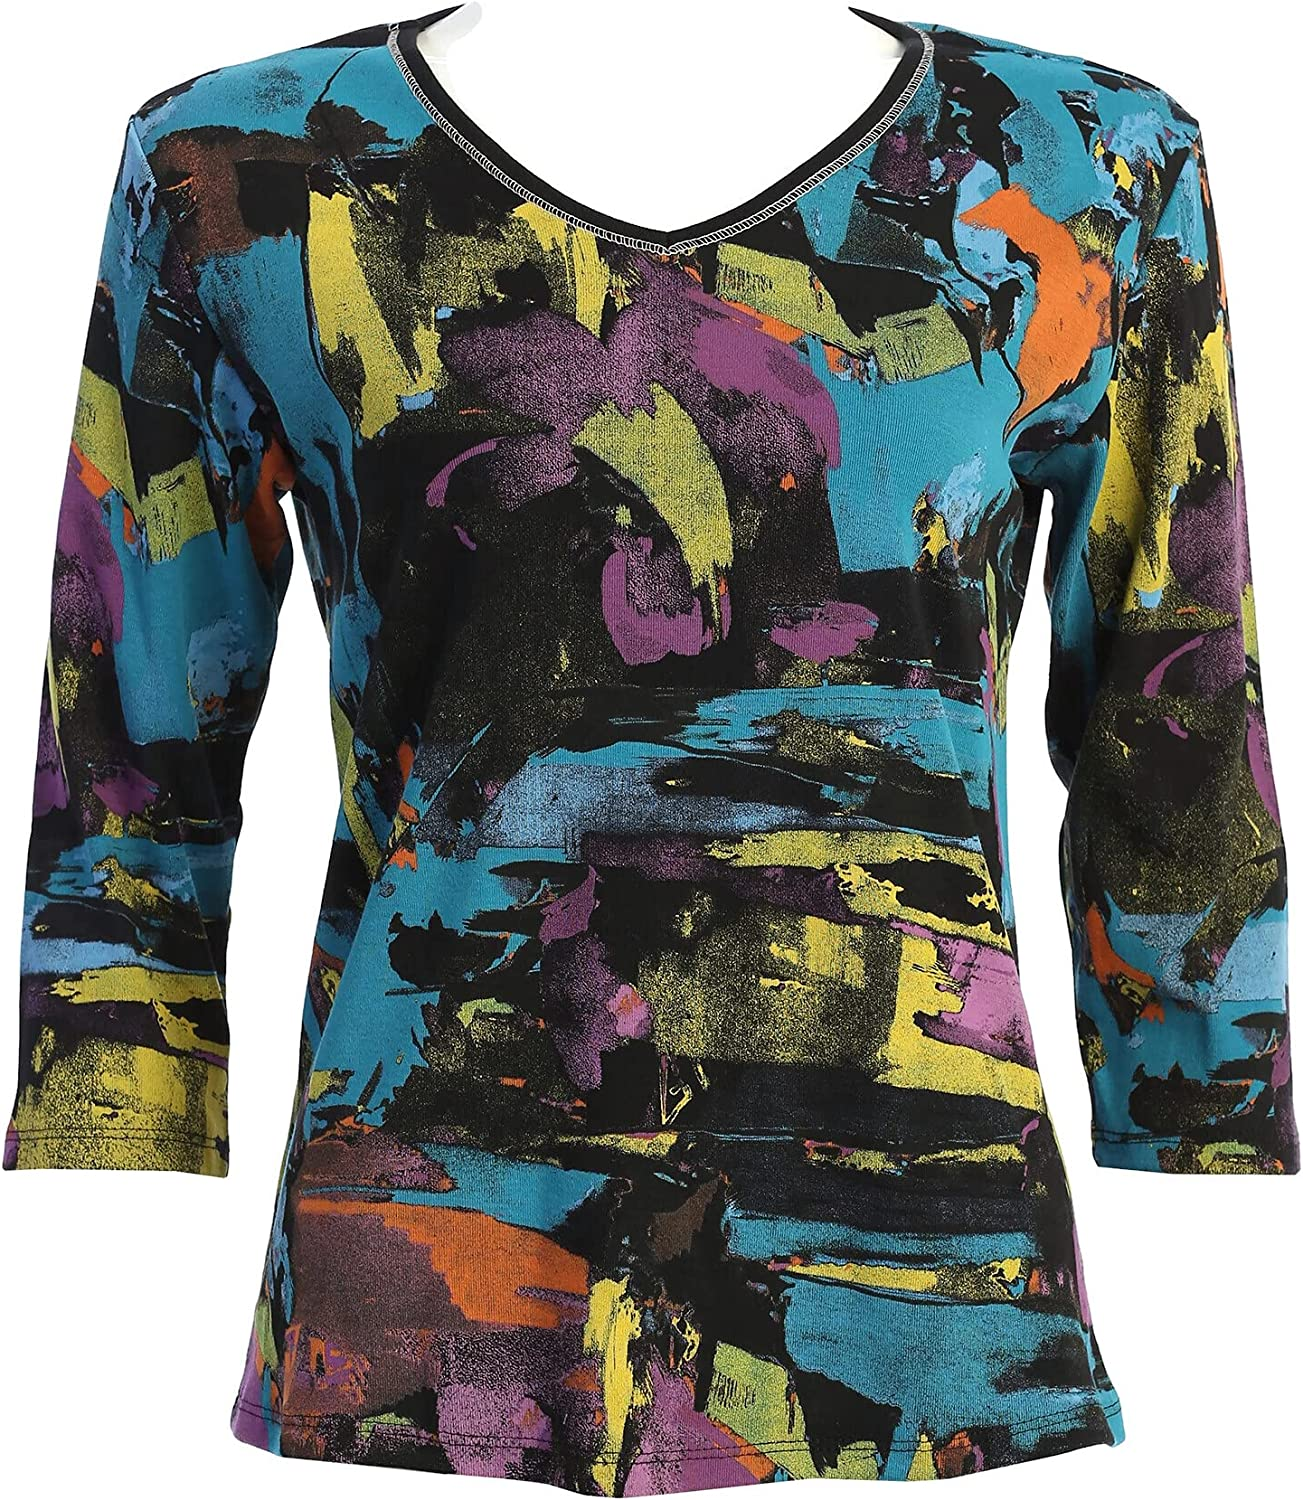 Jess Jane Milwaukee Mall Women's Masterpiece Cotton Top All stores are sold Tee Shirt